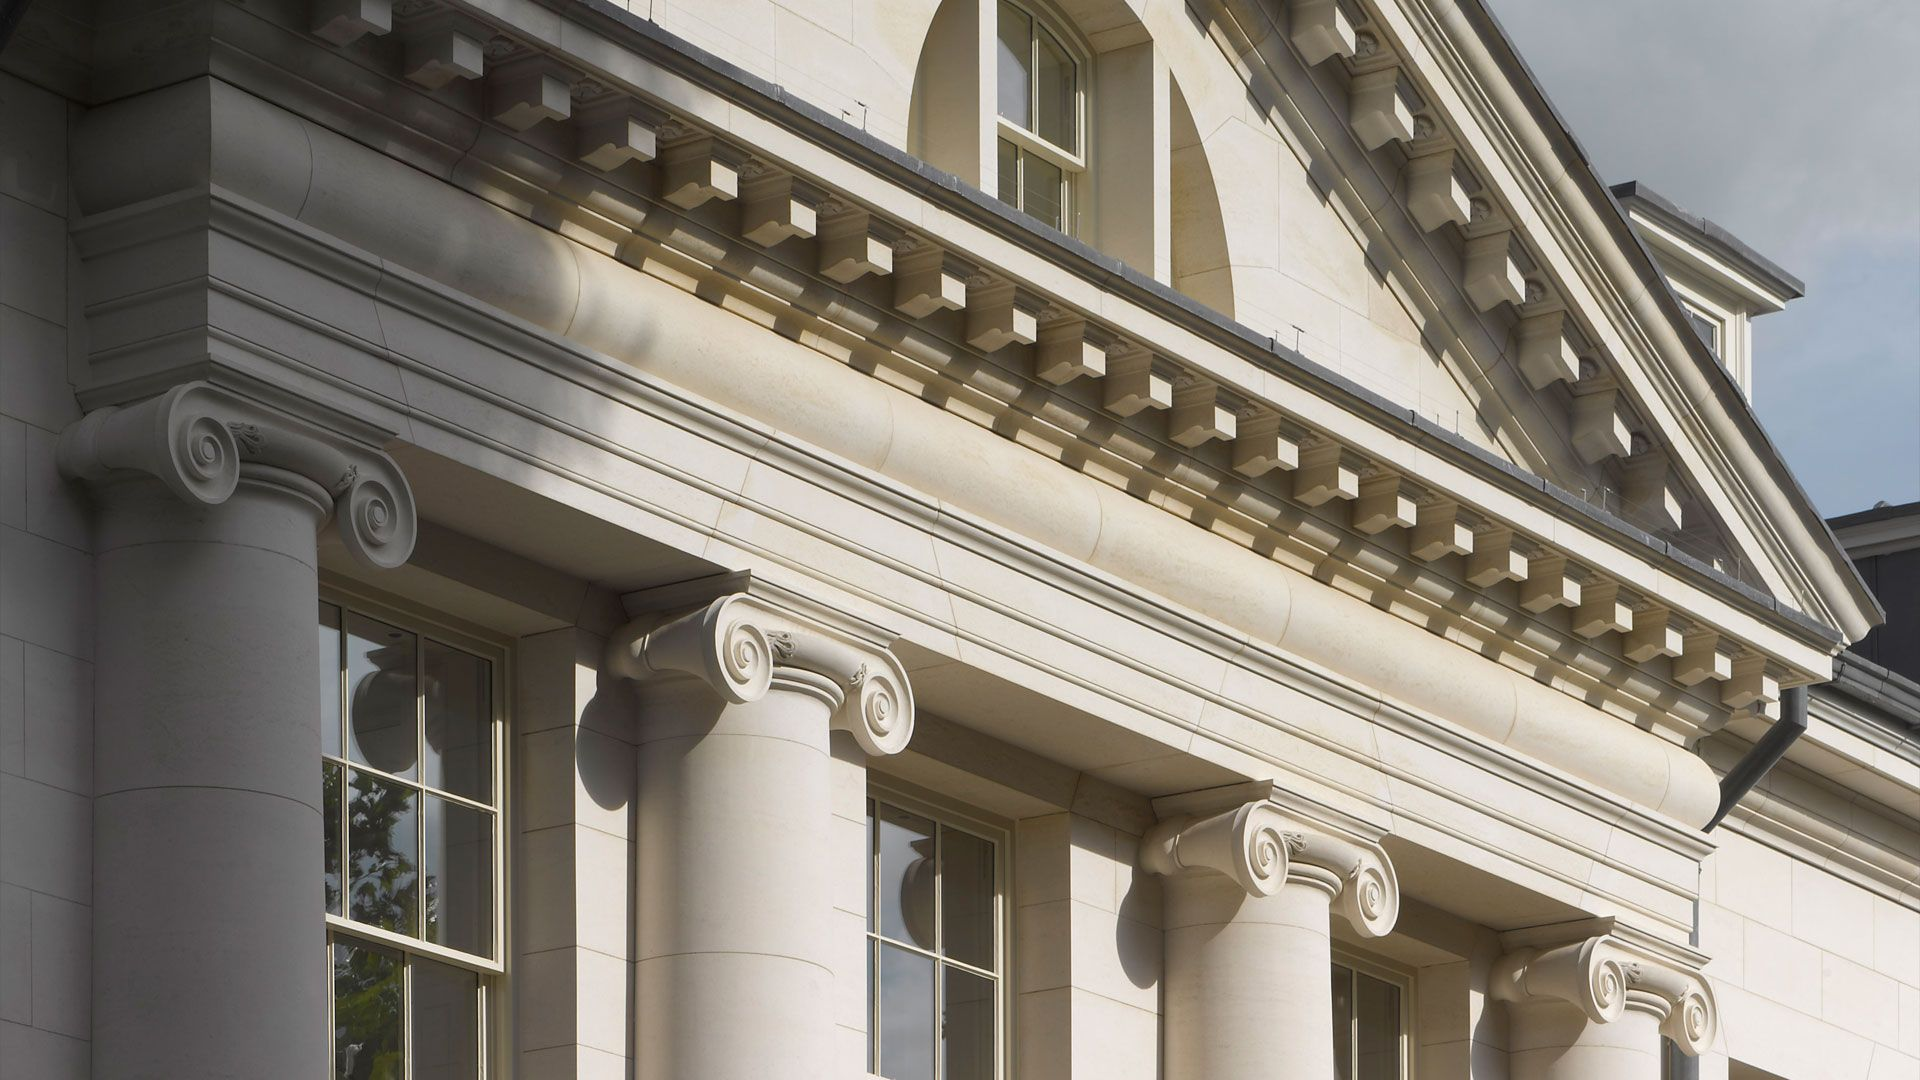 Quinlan And Francis Terry LLP Continues The Classical Architecture Tradition Of Practice Which Was Started By Raymond Erith In